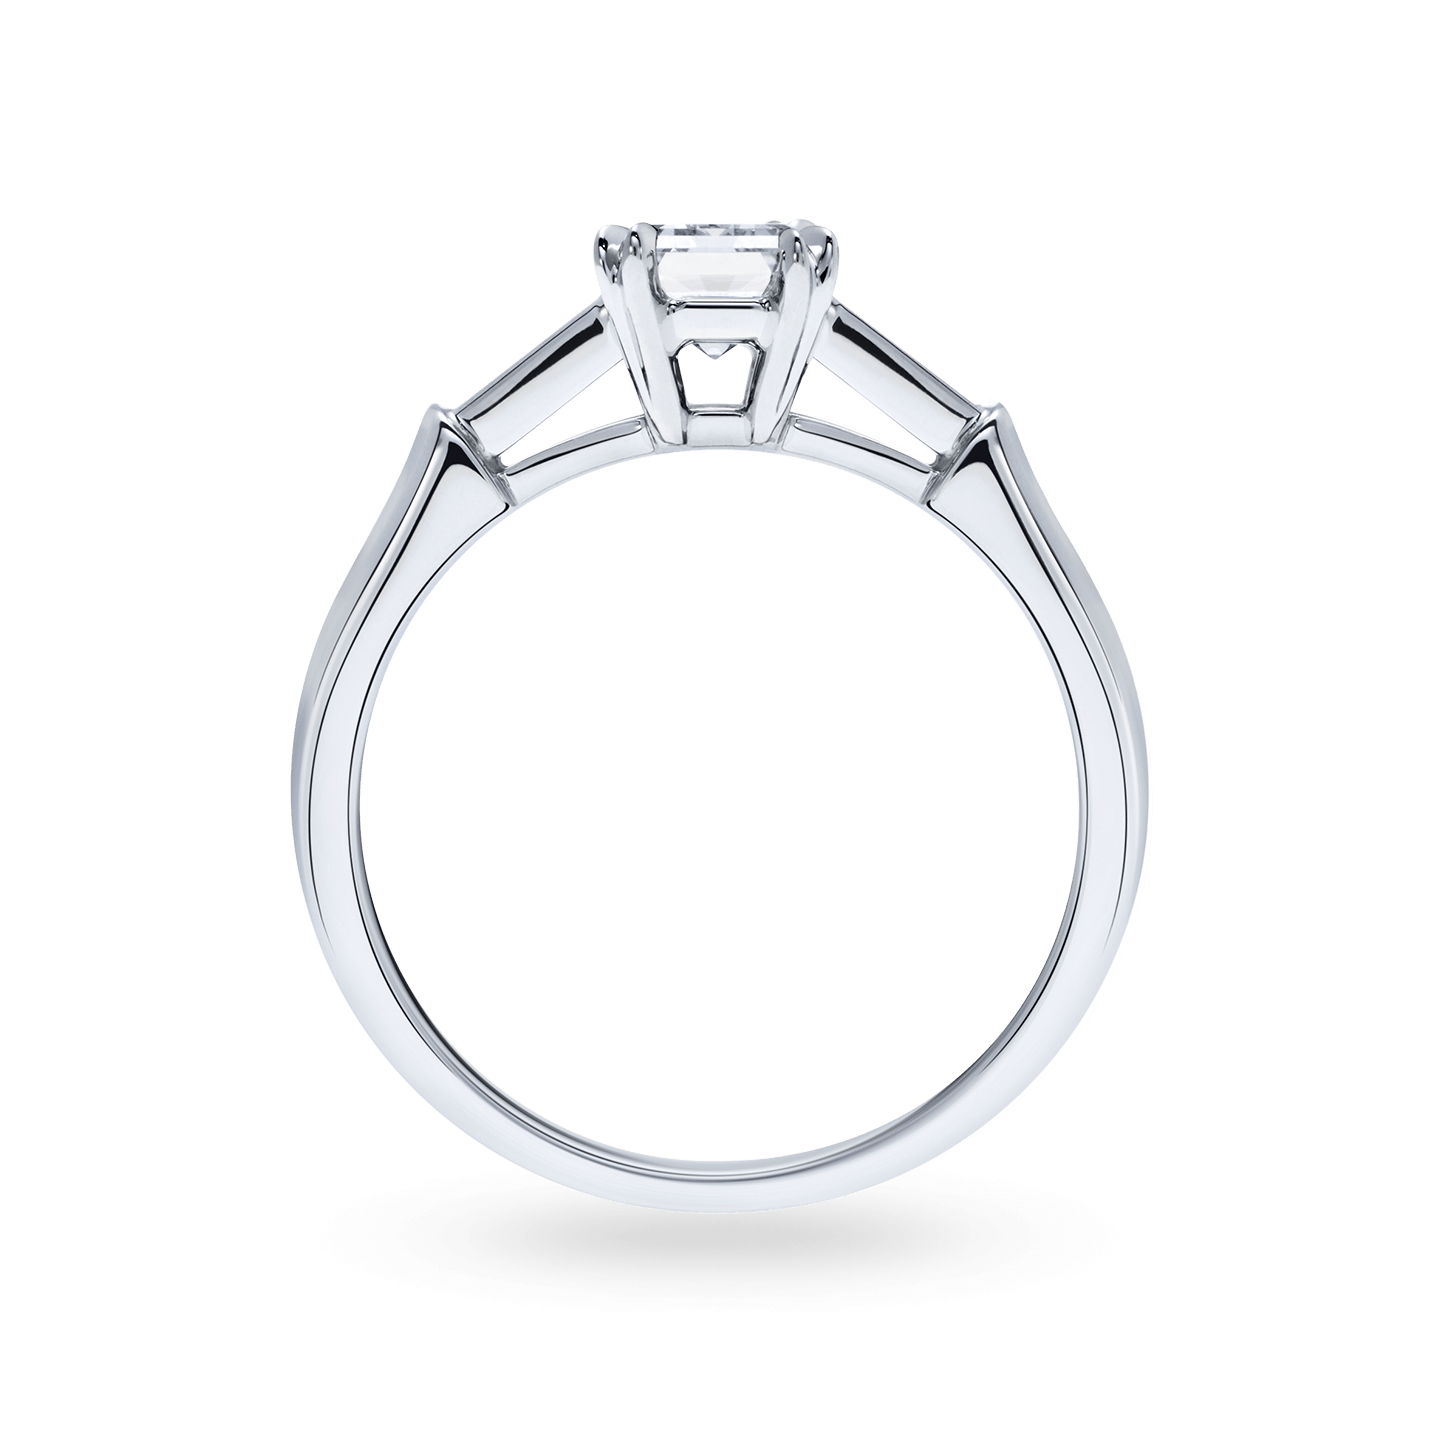 Tryst Emerald-Cut Diamond Engagement Ring, Product Image 2